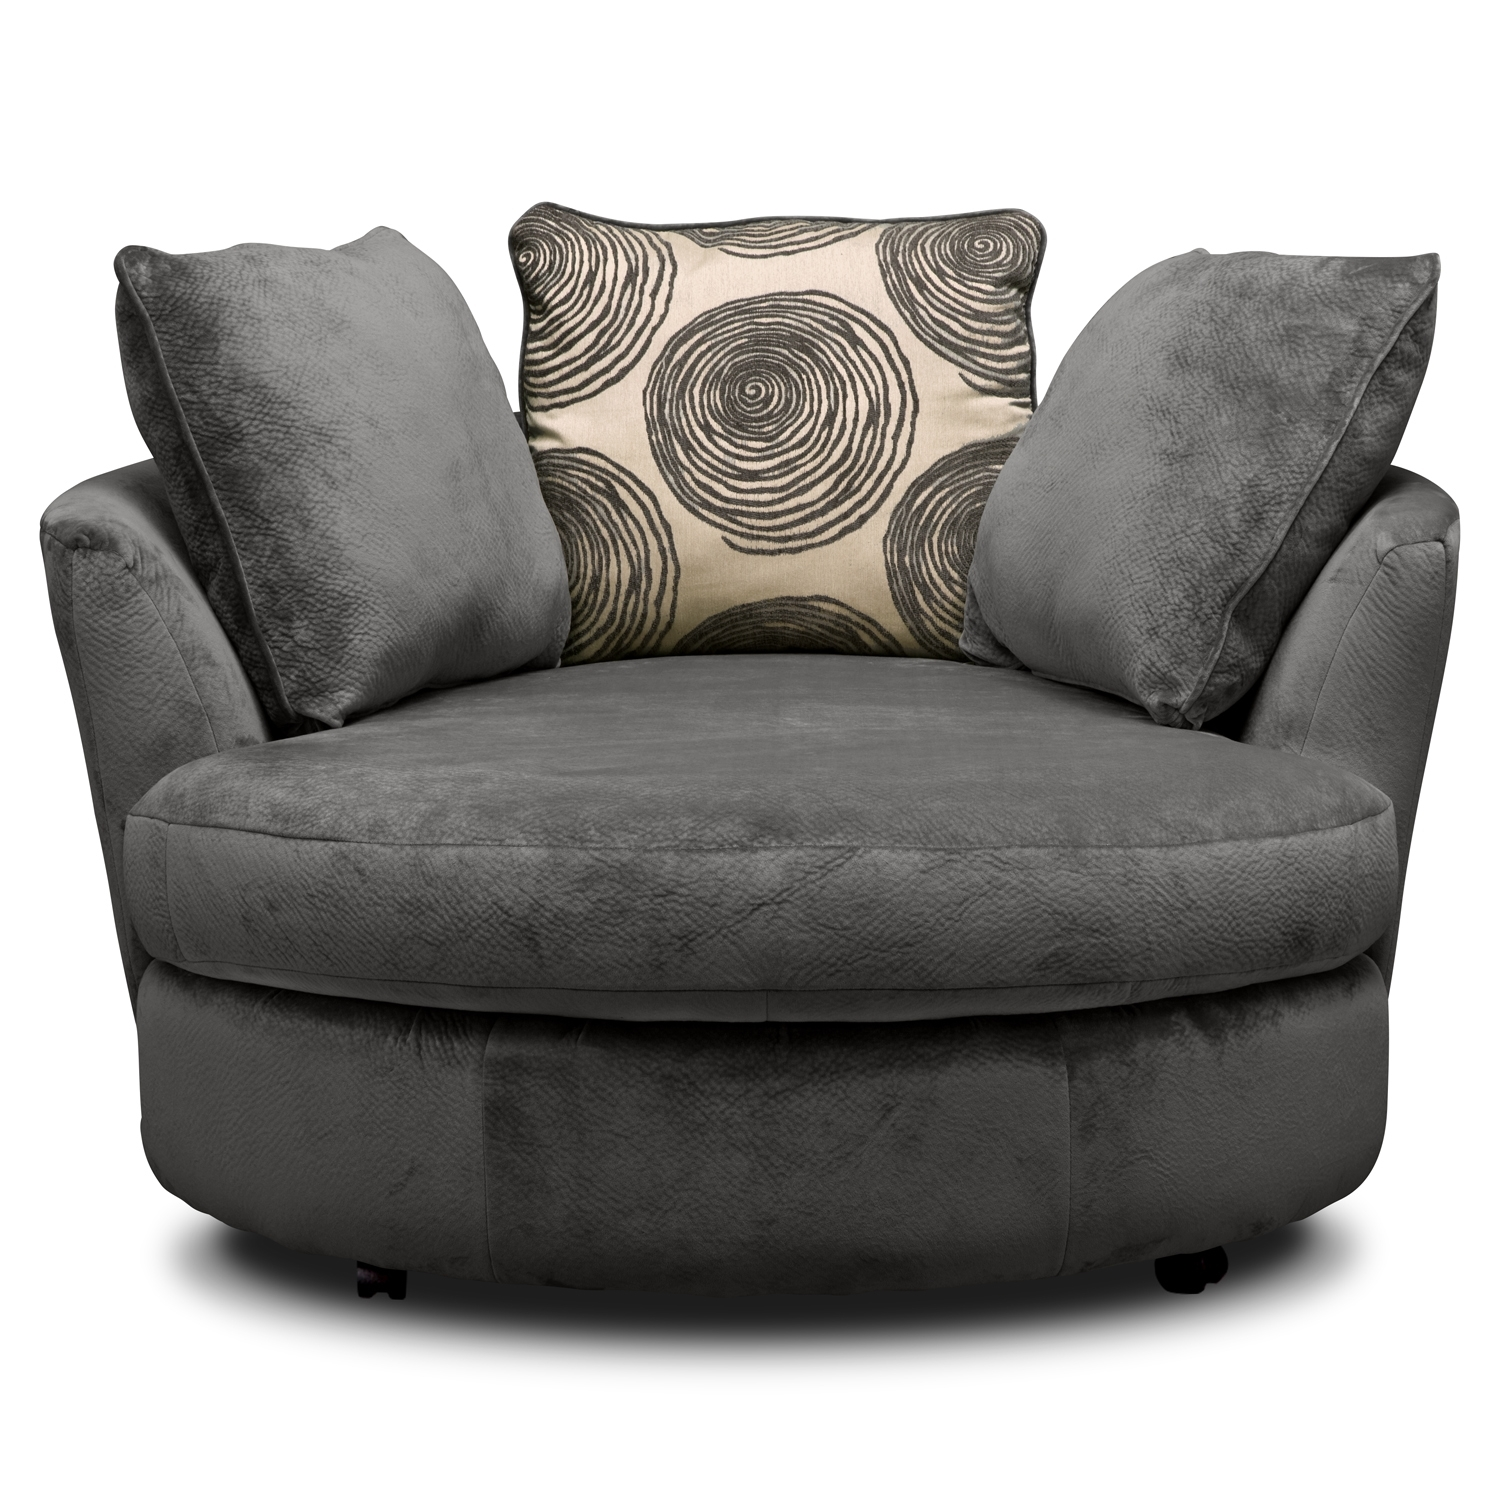 Sofas Center Stupendous Circle Sofa Chair Pictures Design Round For Circle Sofa Chairs (View 4 of 15)